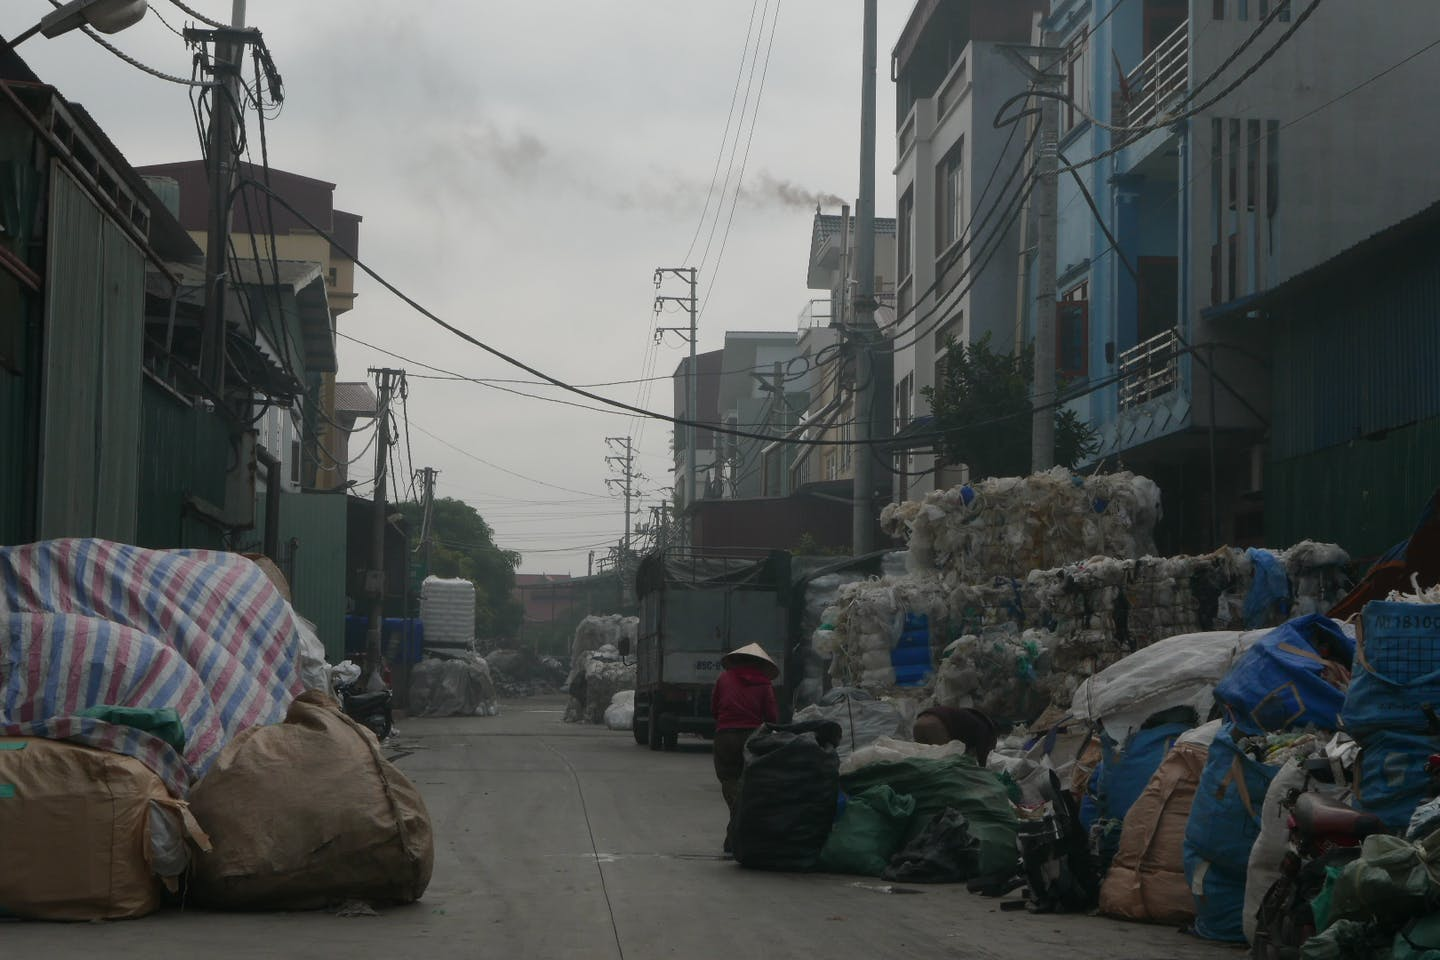 A recycling centre in Lang Khoai, Vietnam, where 1,500 work in the informal recycling sector. Image: CL2B